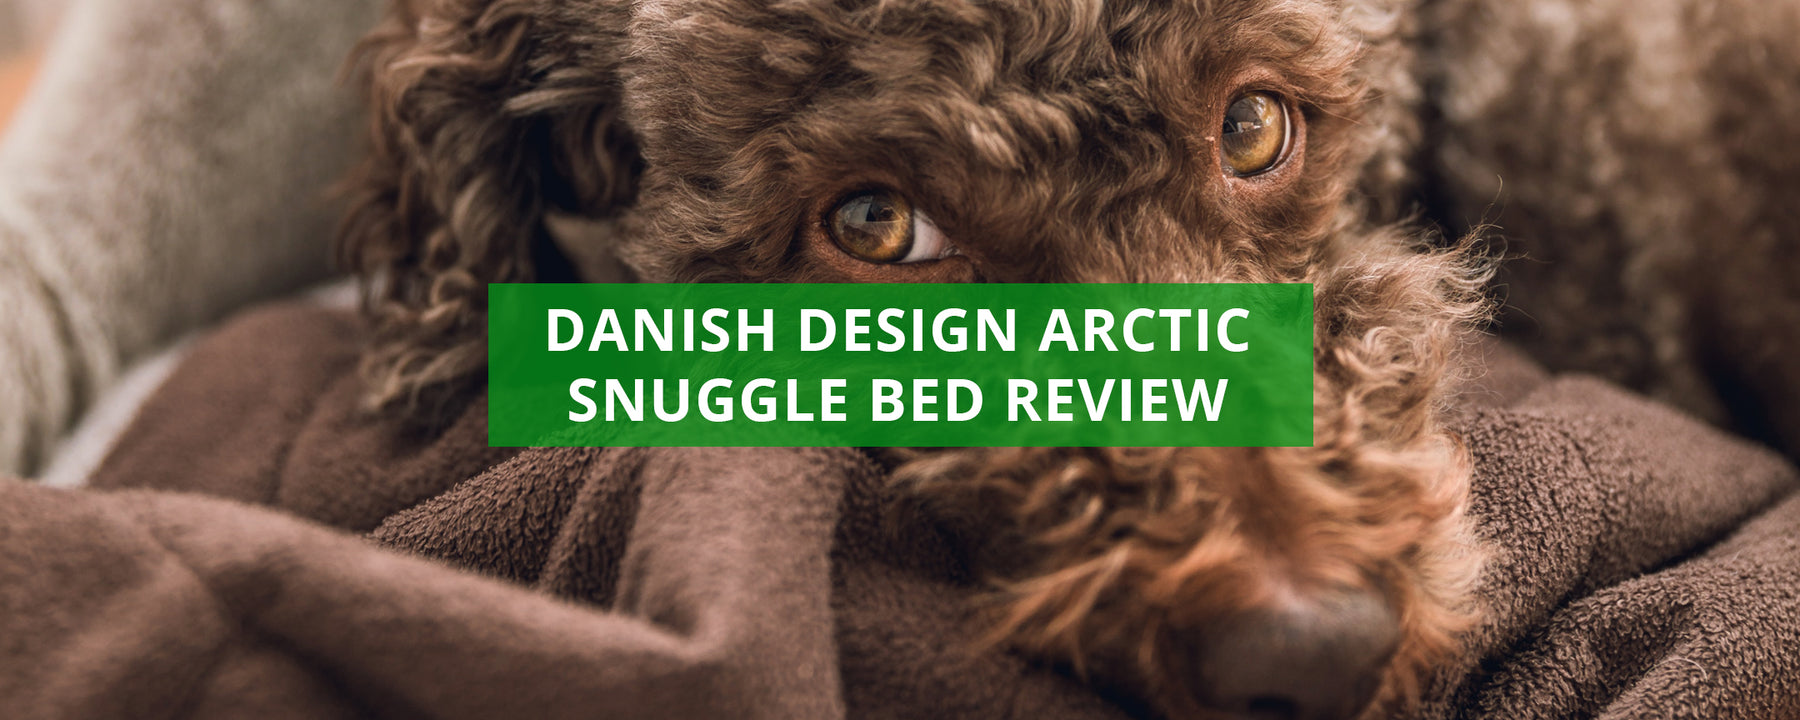 Danish Design Arctic Snuggle Dog Bed Review